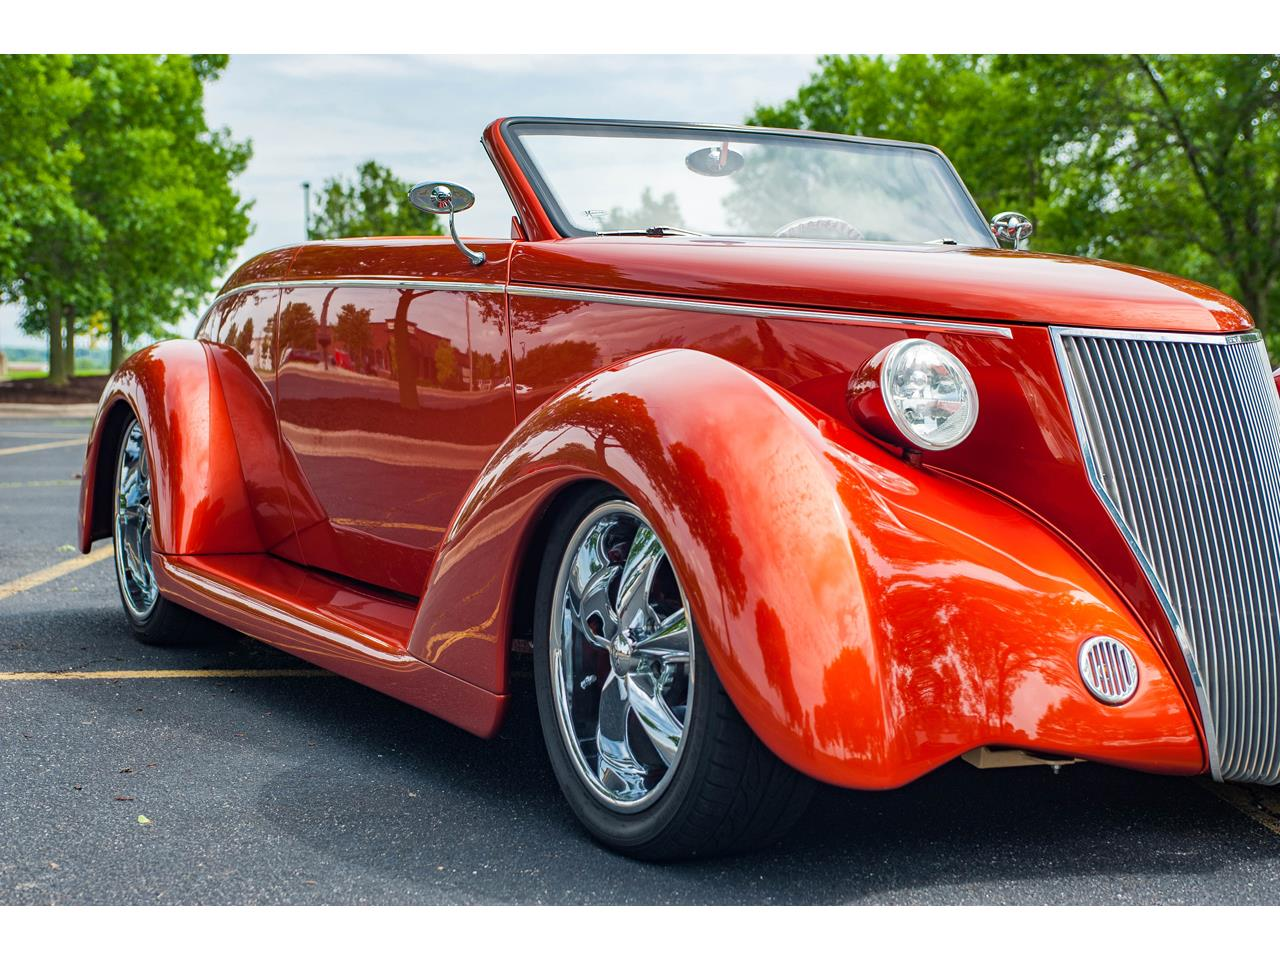 Large Picture of 1936 Ford Roadster located in Illinois Offered by Gateway Classic Cars - St. Louis - QB9T